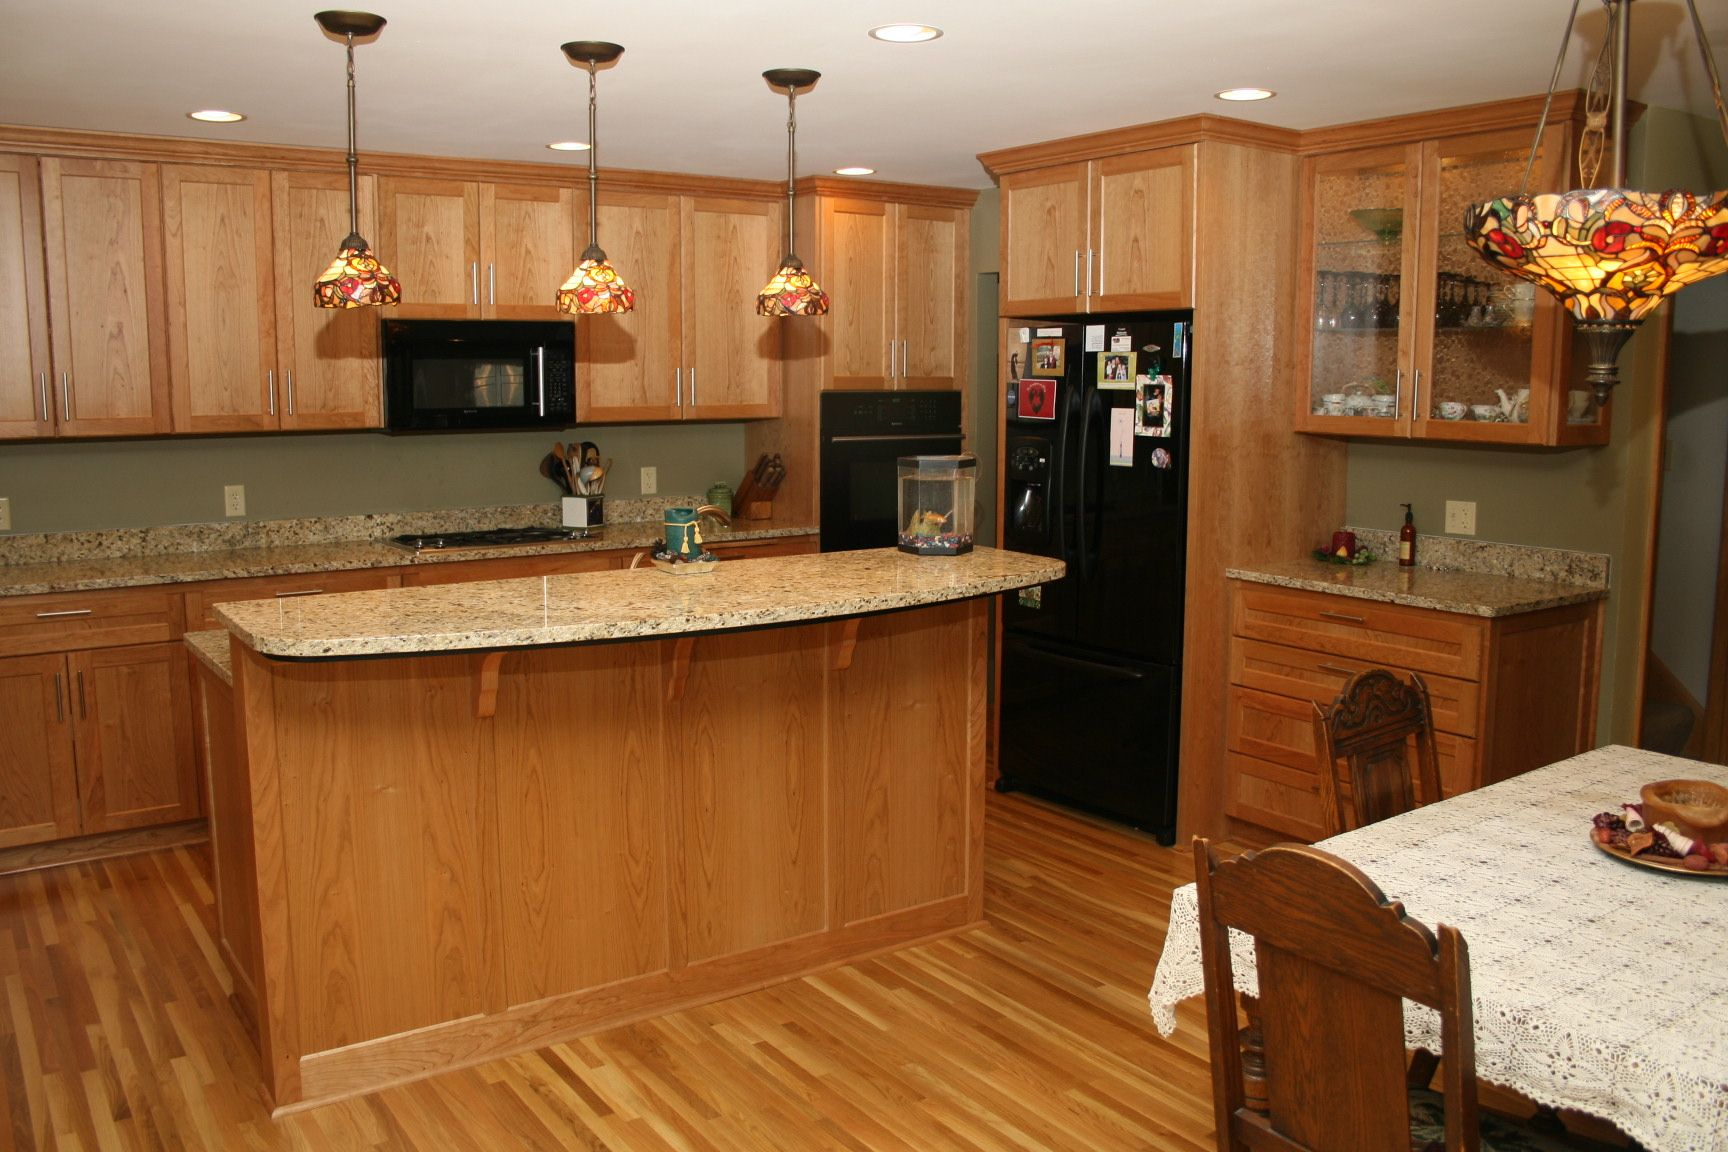 oak kitchen cabinets granite countertop | Protime Construction ...